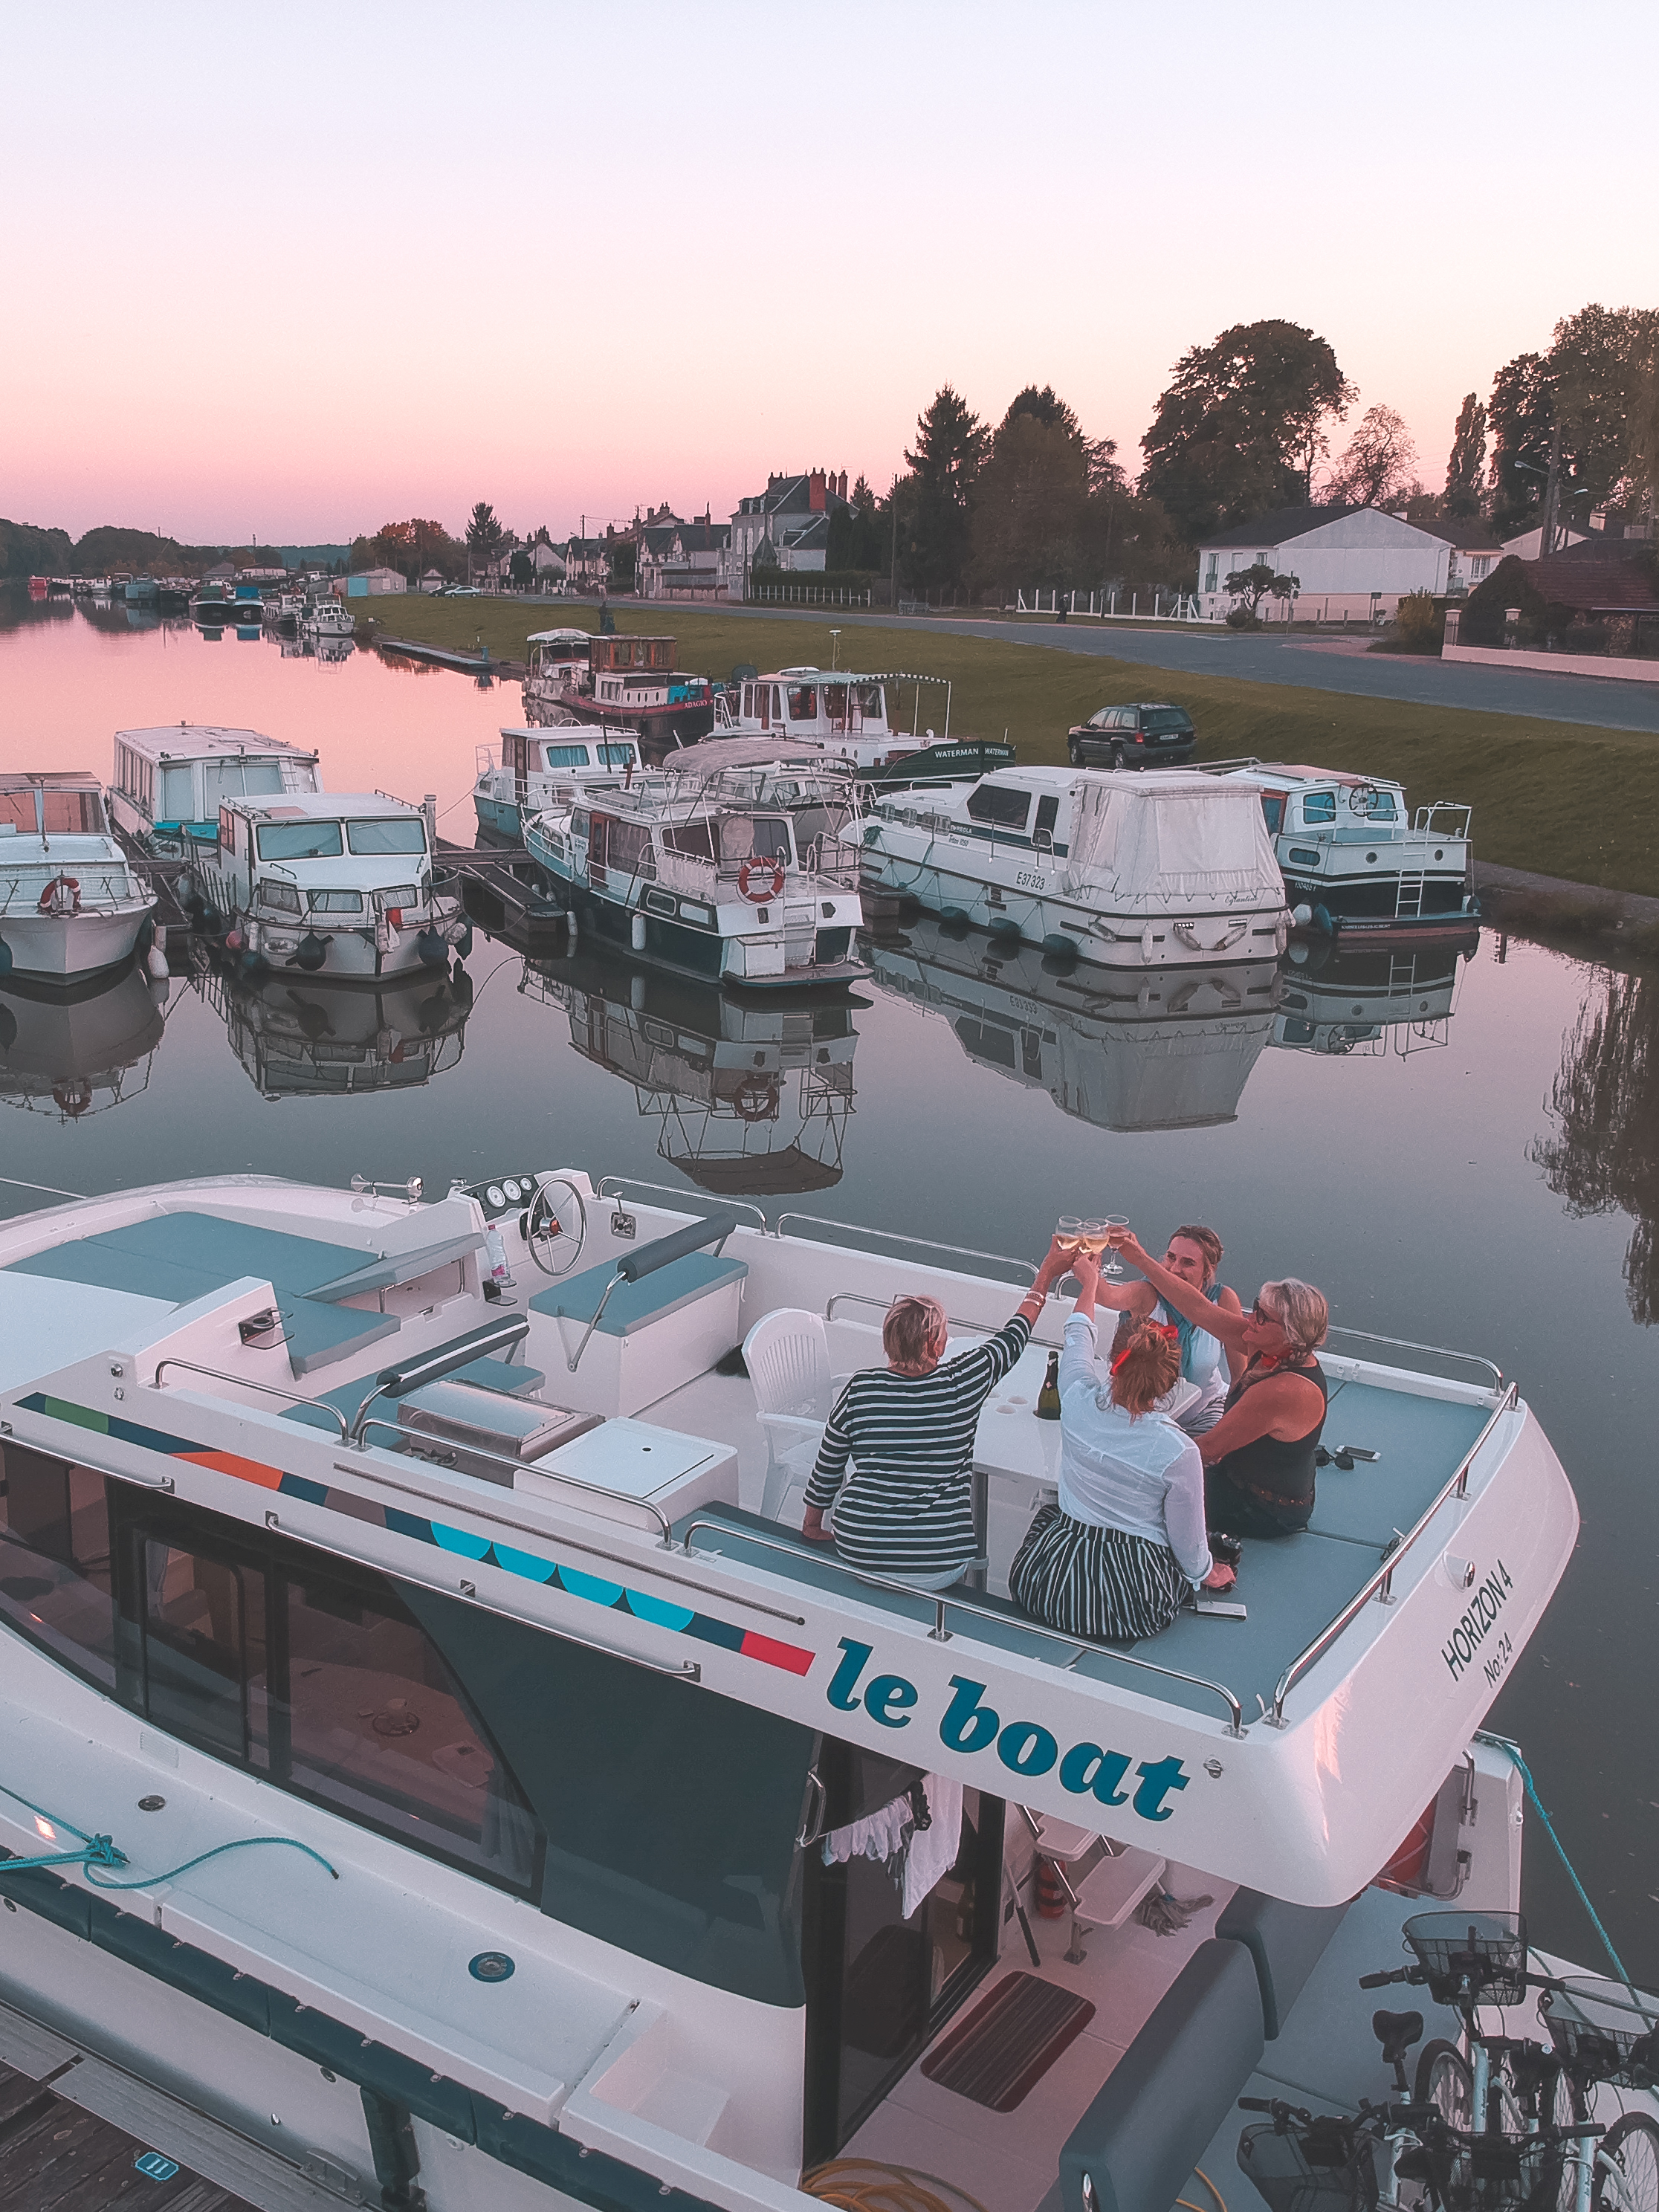 VIDEO: Self-drive Houseboat Holiday with Le Boat Vacations